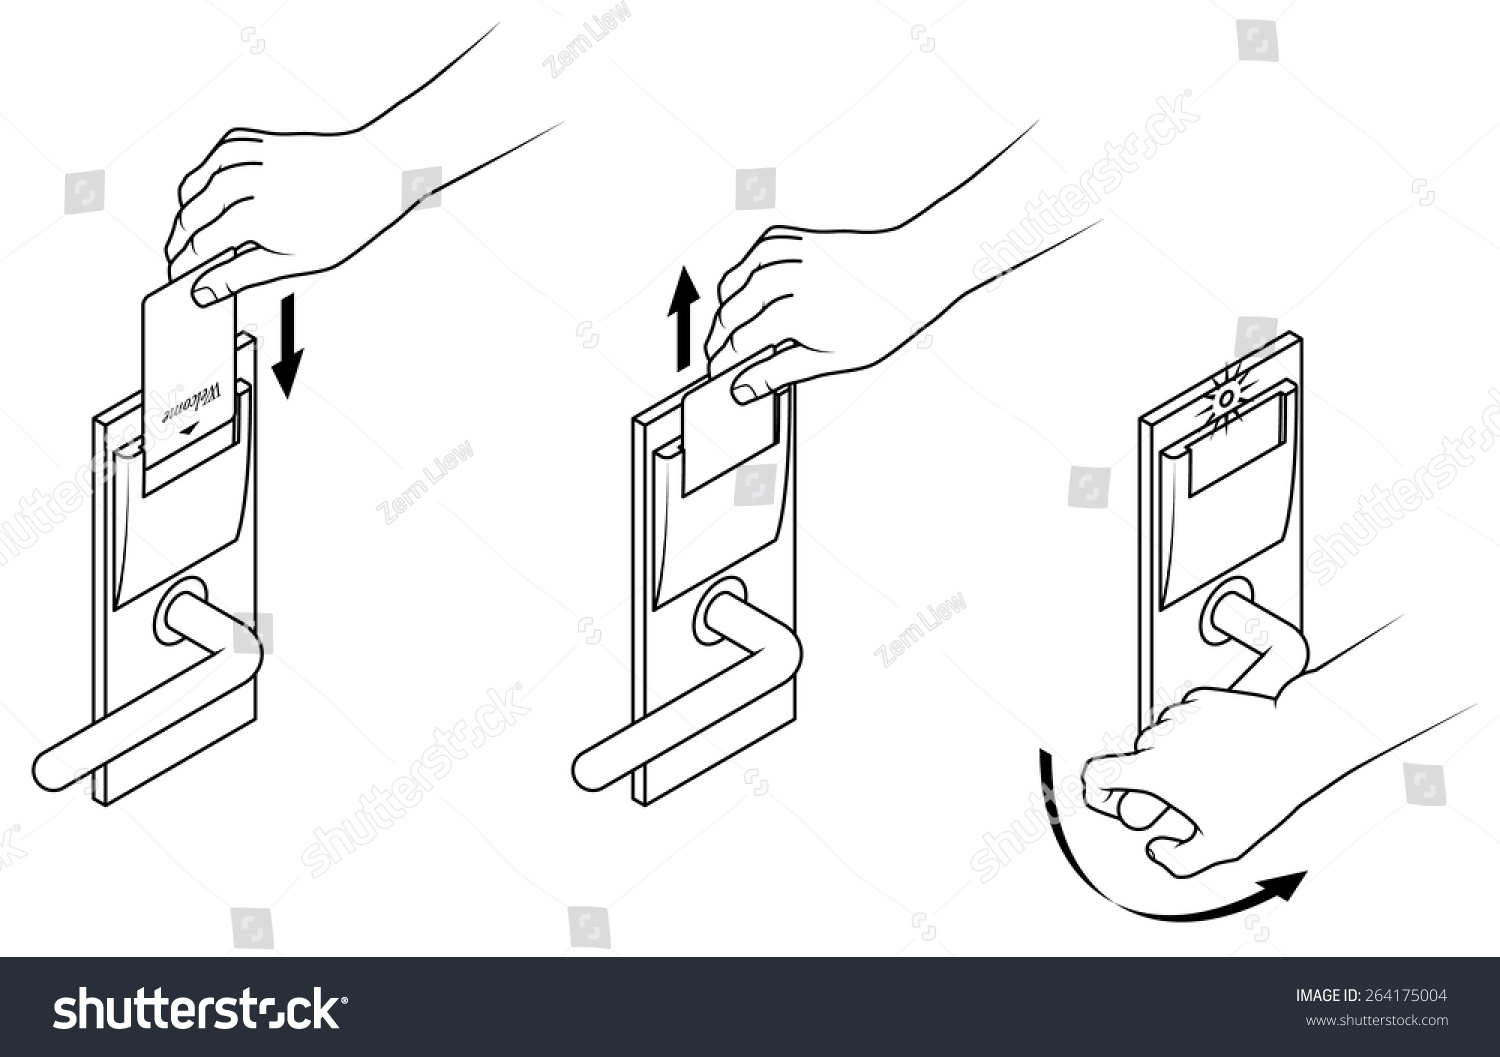 Electronic keycard door opening instructions diagram stock photo electronic keycard door opening instructions diagram insert and remove card top slot ccuart Gallery